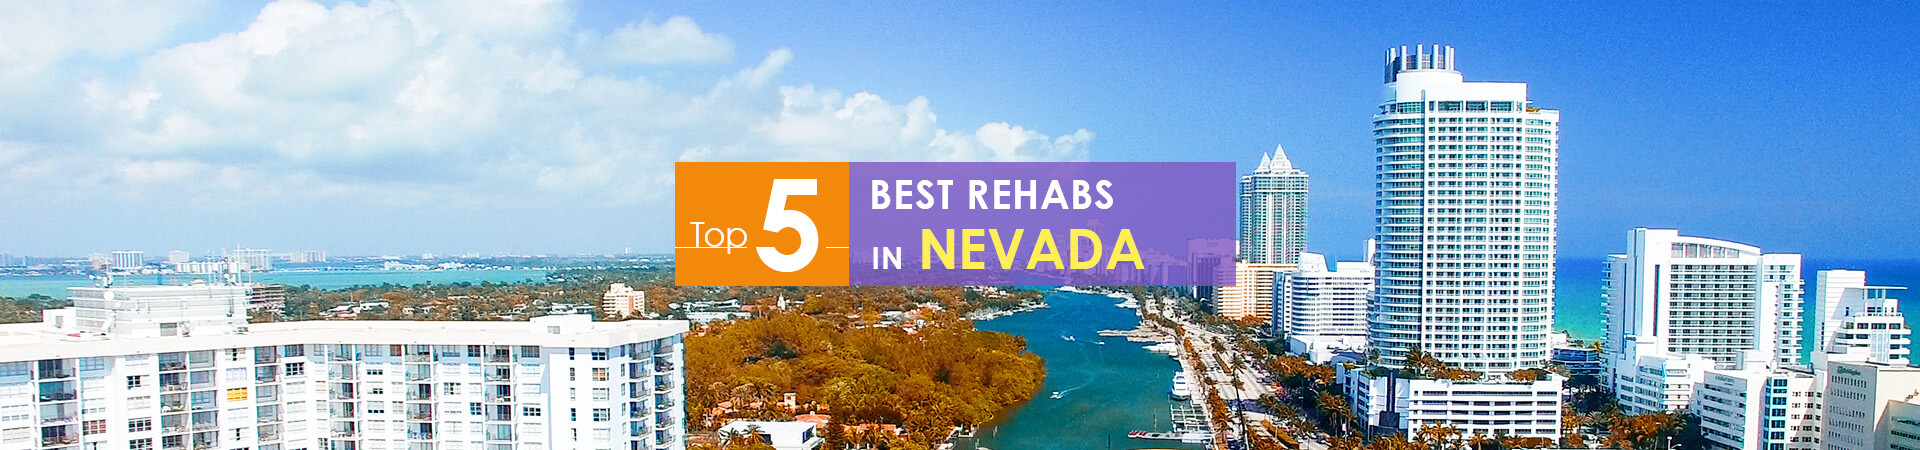 Nevada view and top 5 rehabs caption